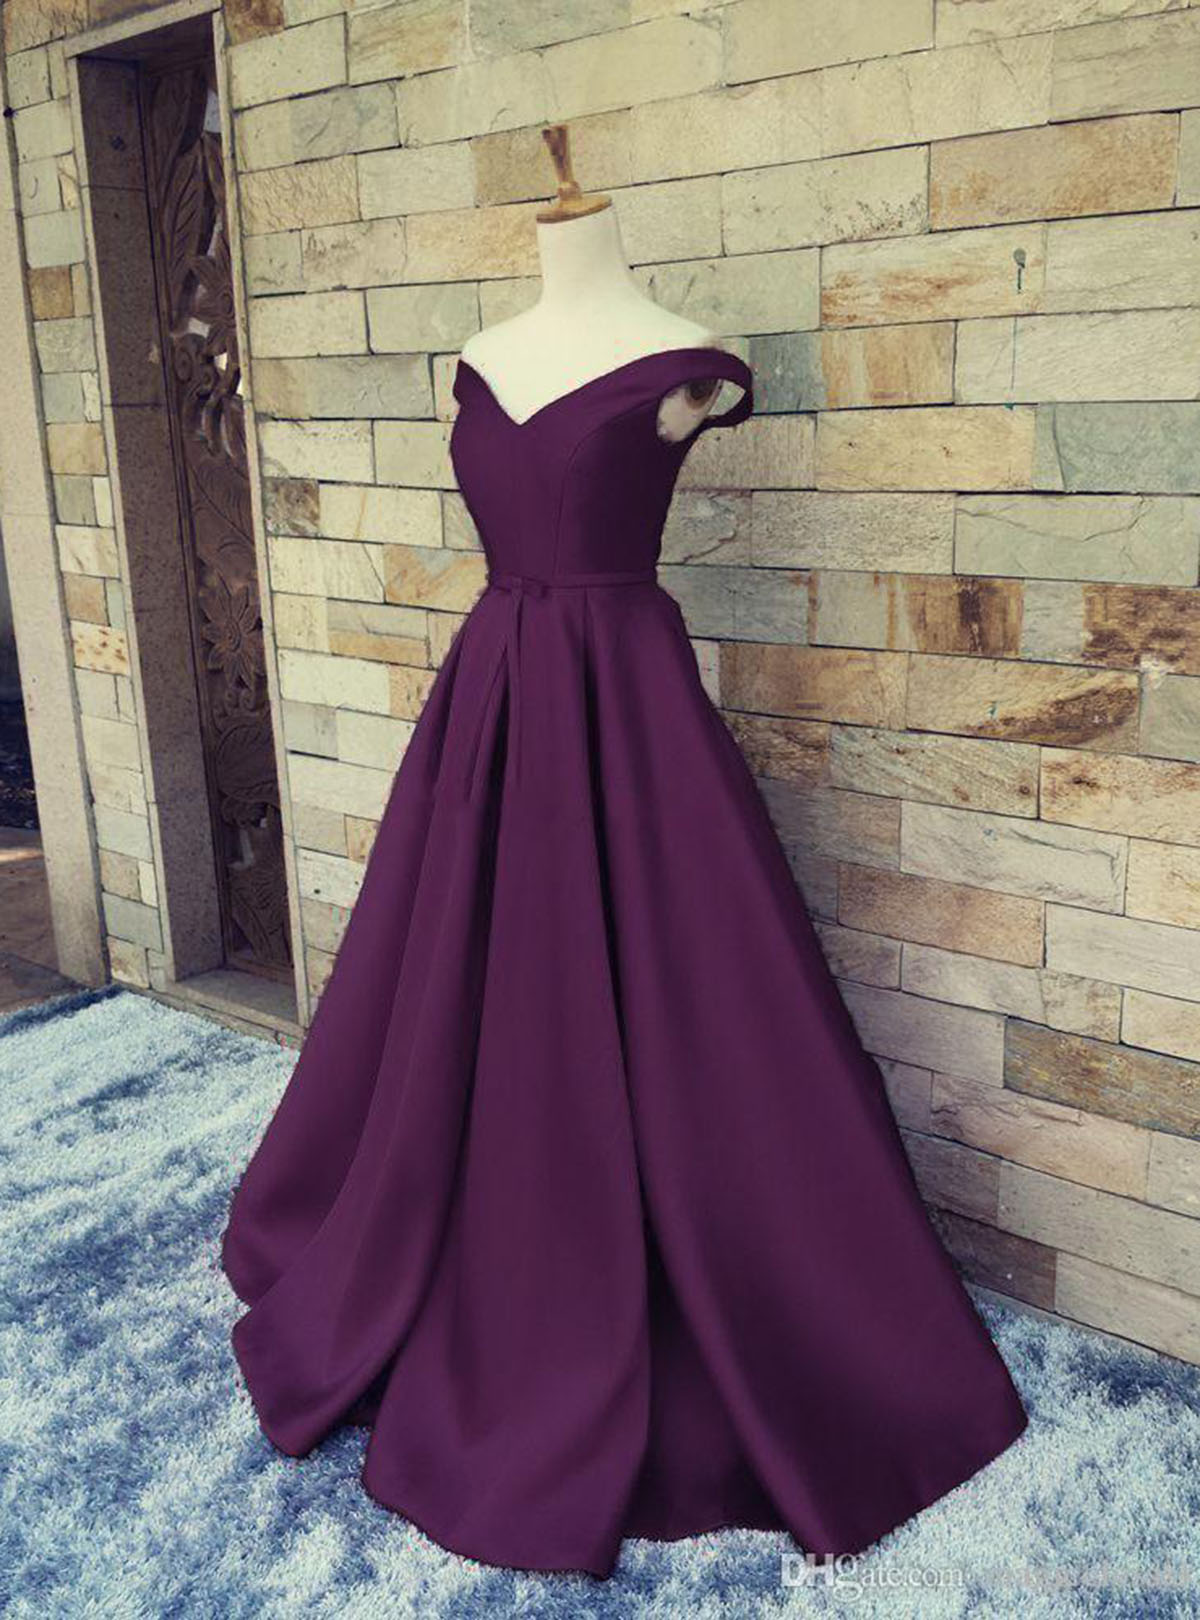 f5a8bb5de2e9 2018 deep purple satin off shoulder V neck A-line sweet 16 prom dresses